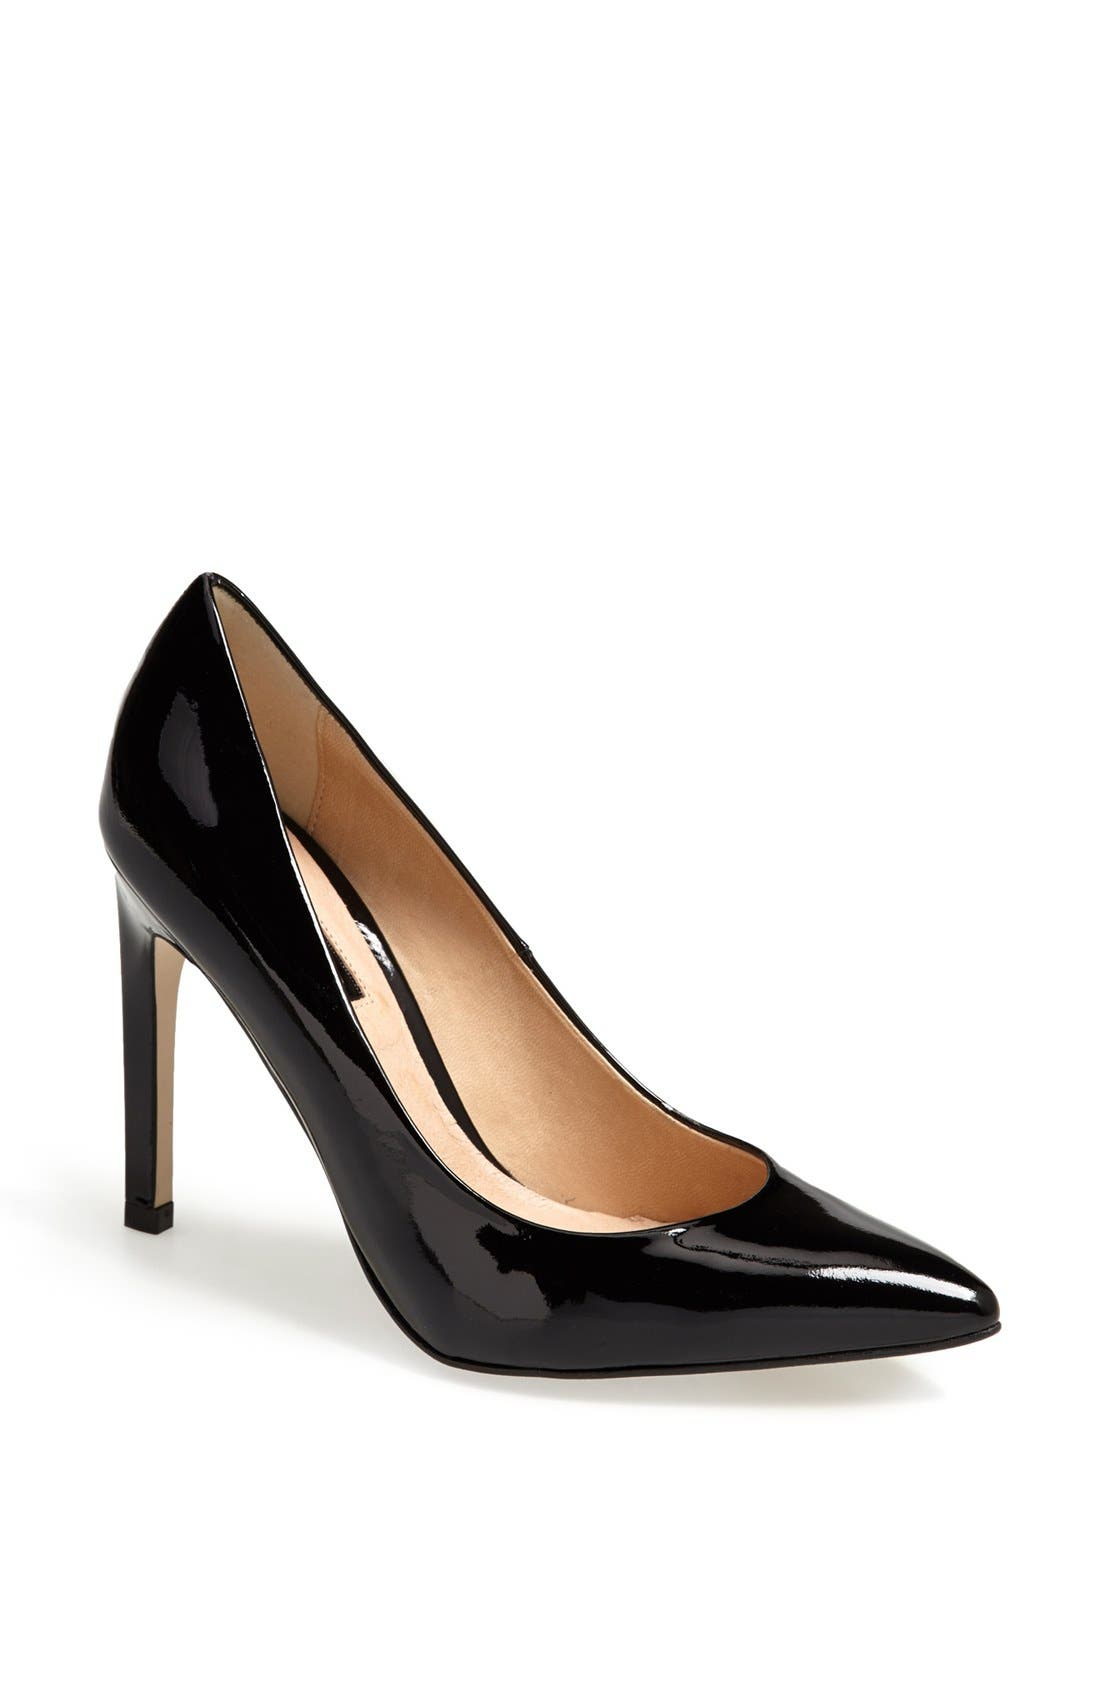 Main Image - Topshop 'Glimmer' Pointed Toe Pump